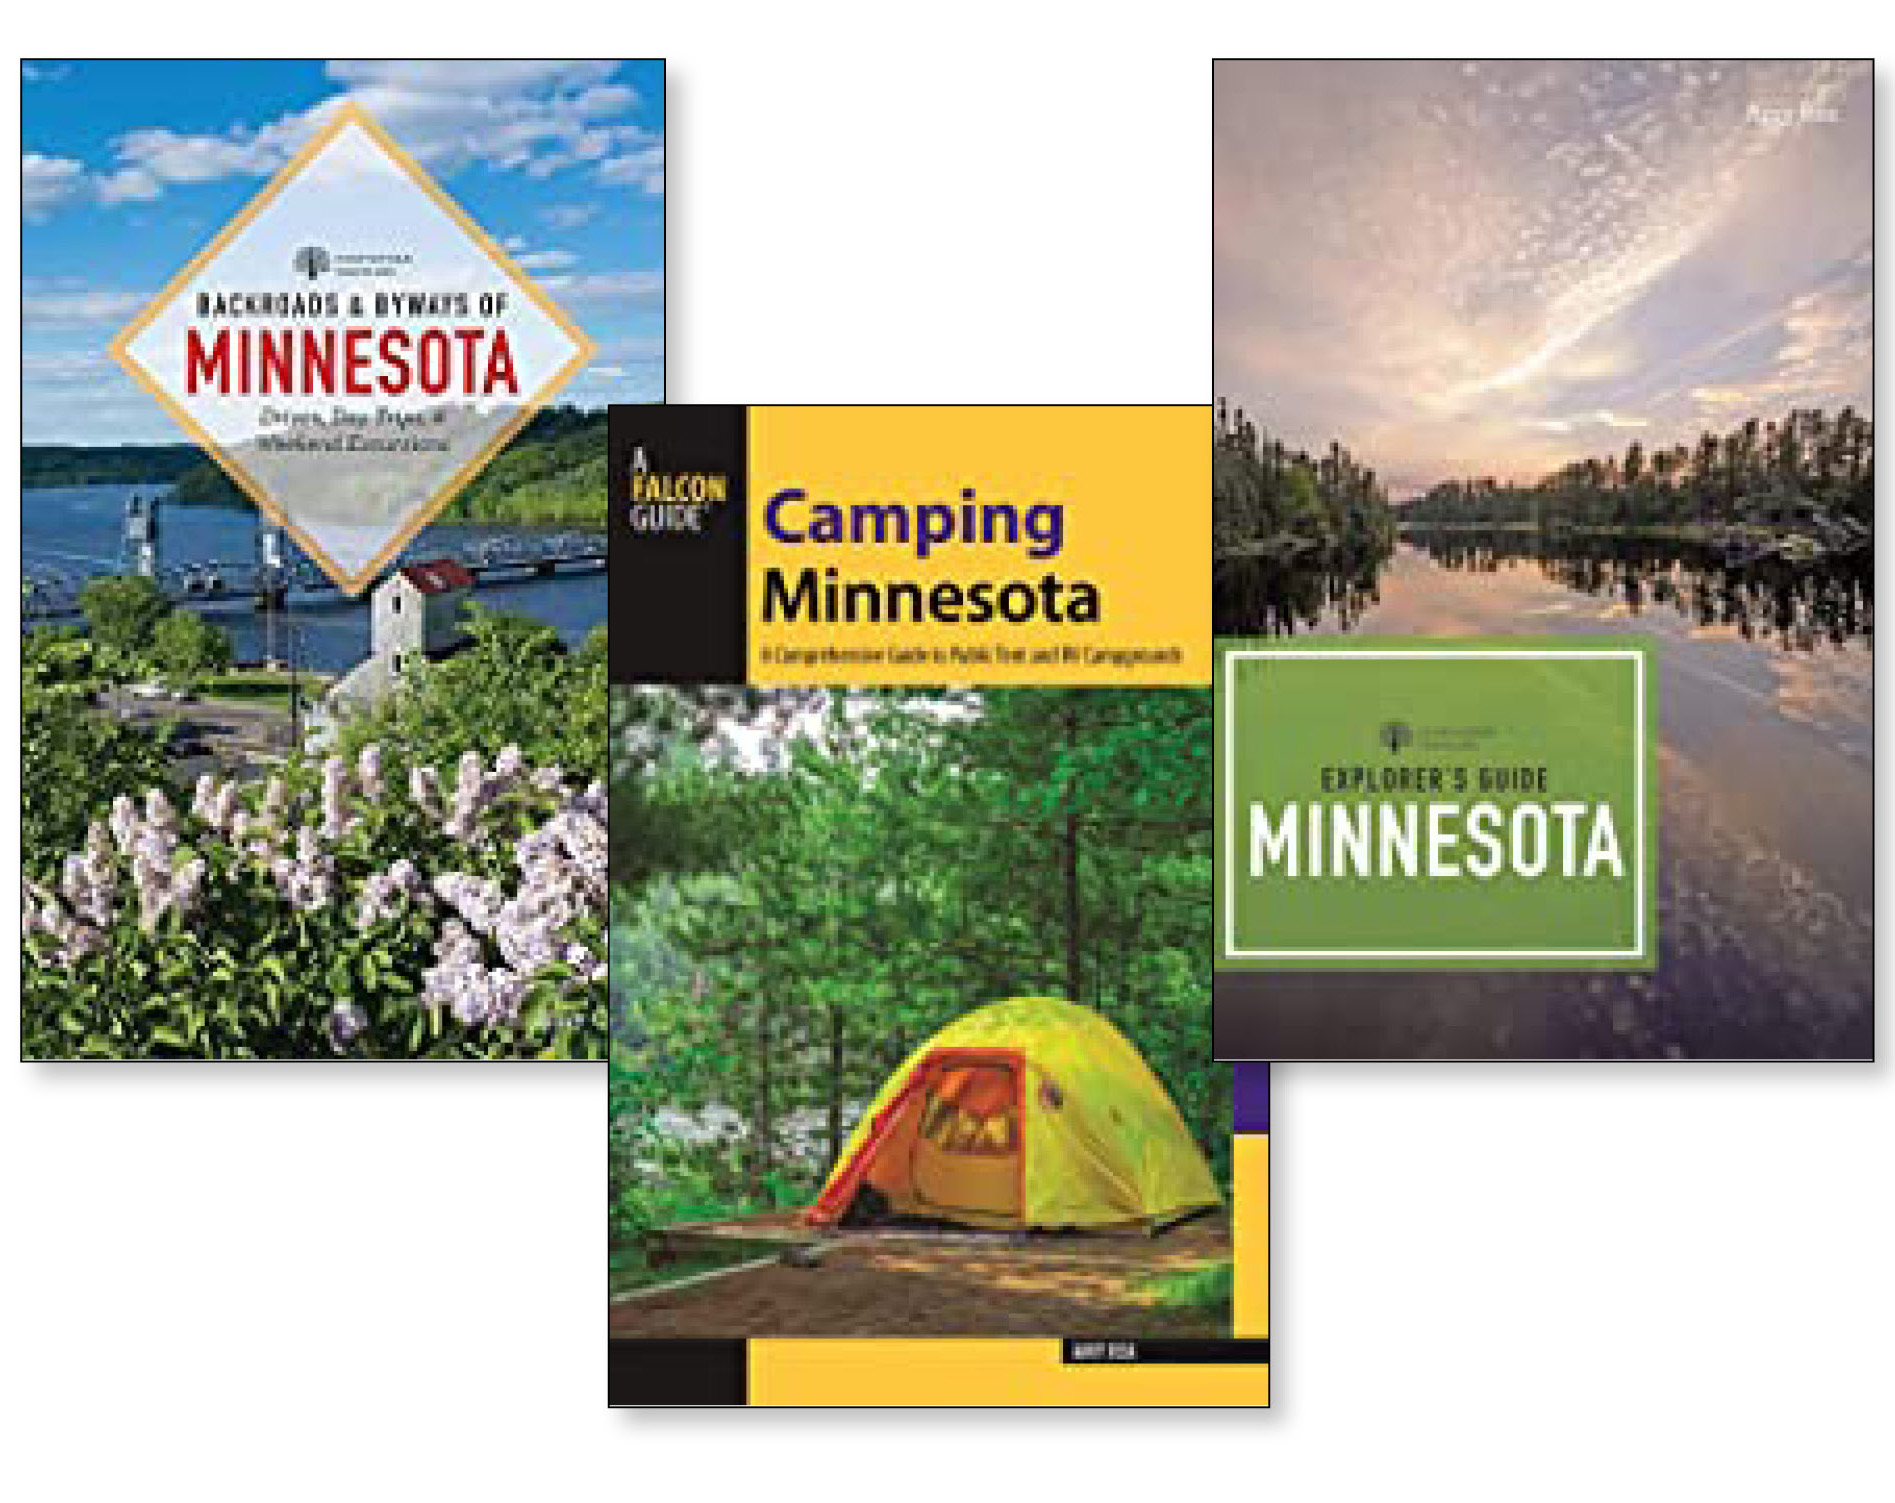 Image of book covers for variety of Minnesota travel guides.